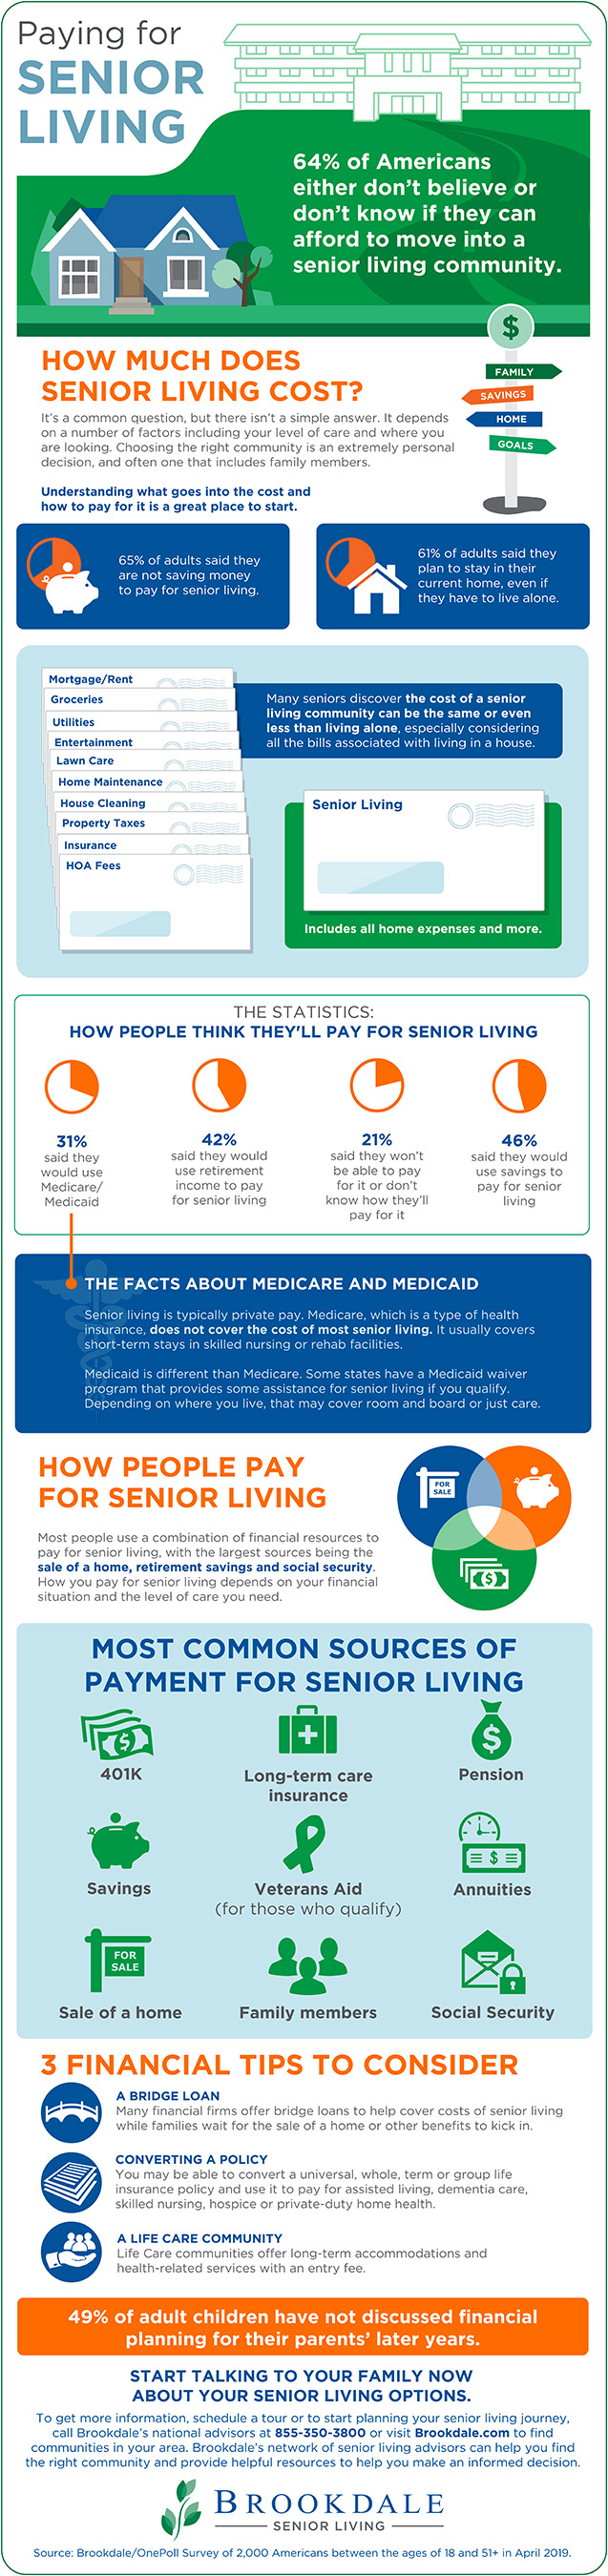 Get a better understanding of how to pay for senior living, including a few tips to manage costs.